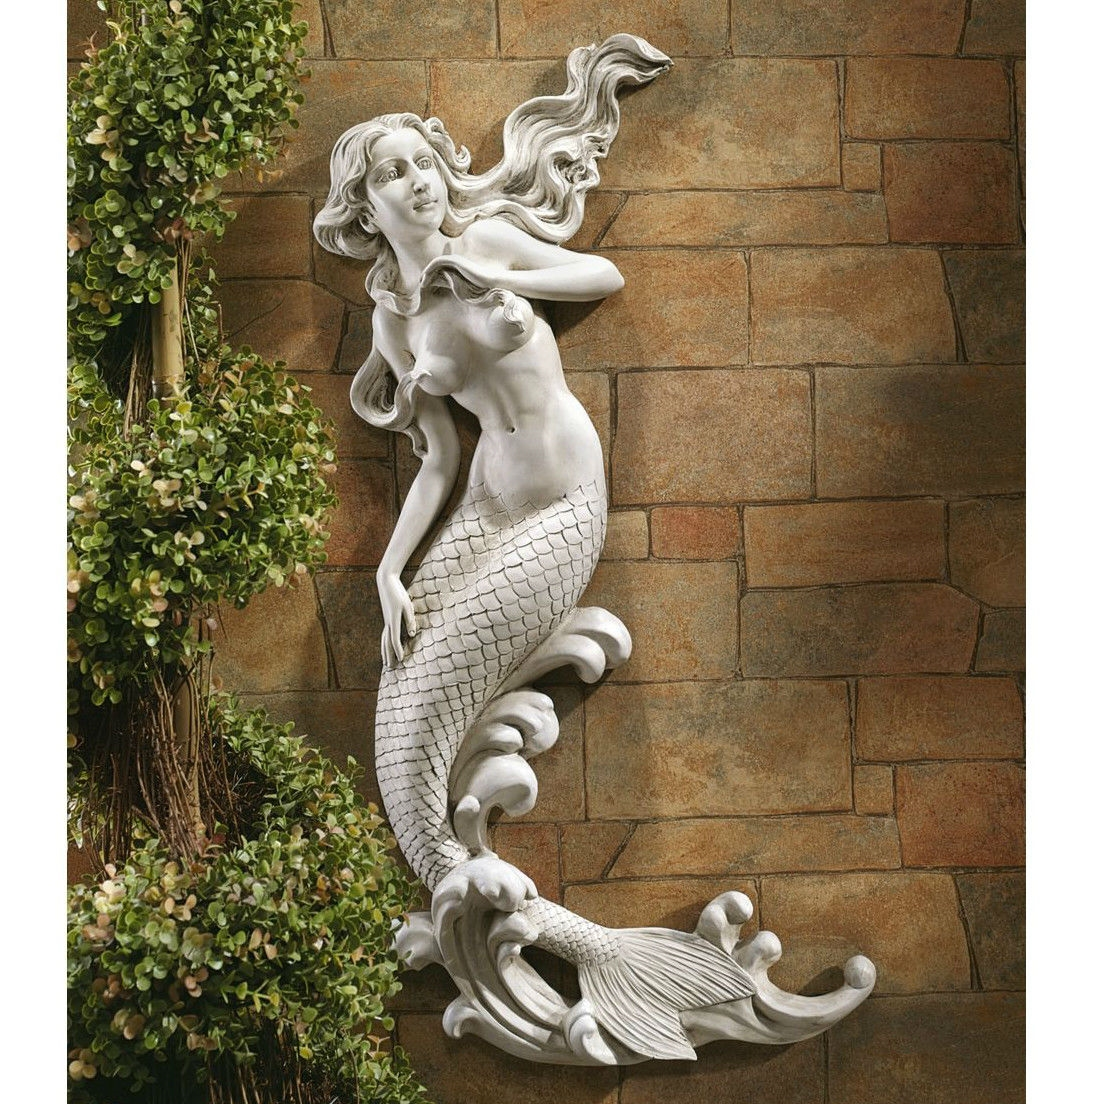 Patio Wall Decor outdoor patio wall decor mermaid wall-mounted garden statue